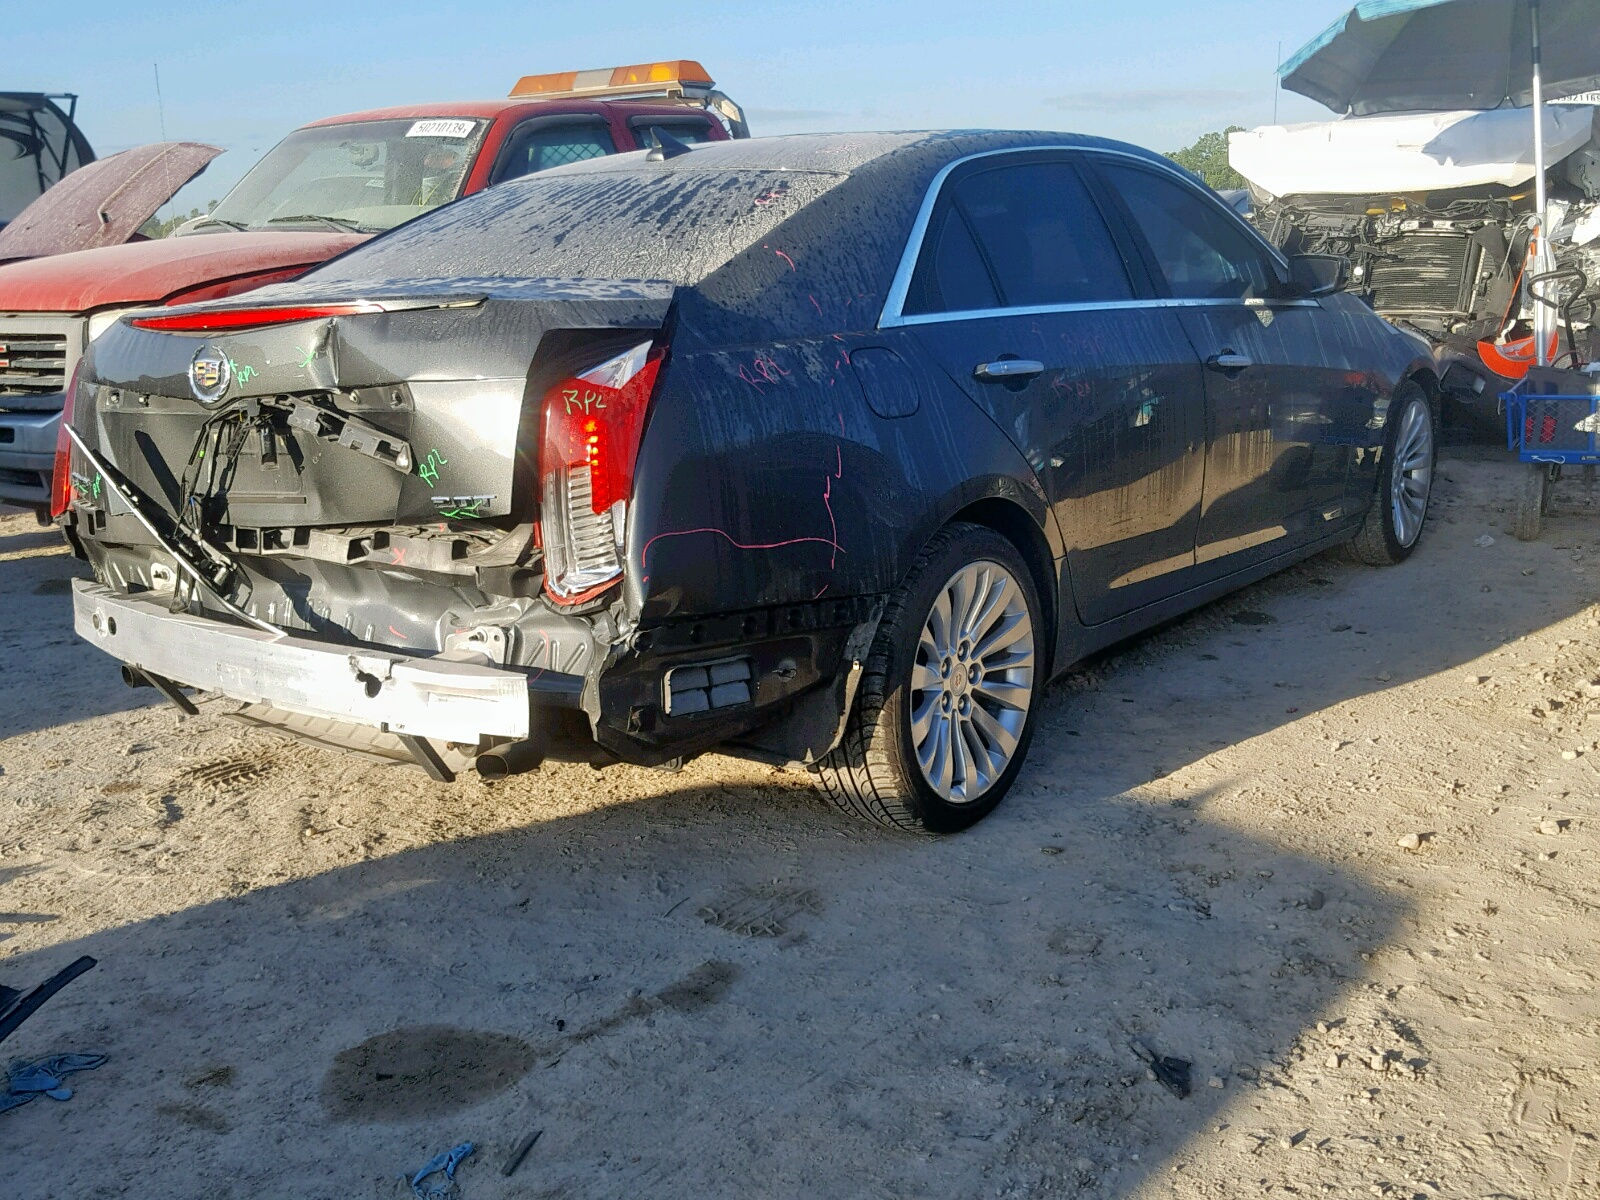 2014 Cadillac Cts Luxury 2.0L rear view